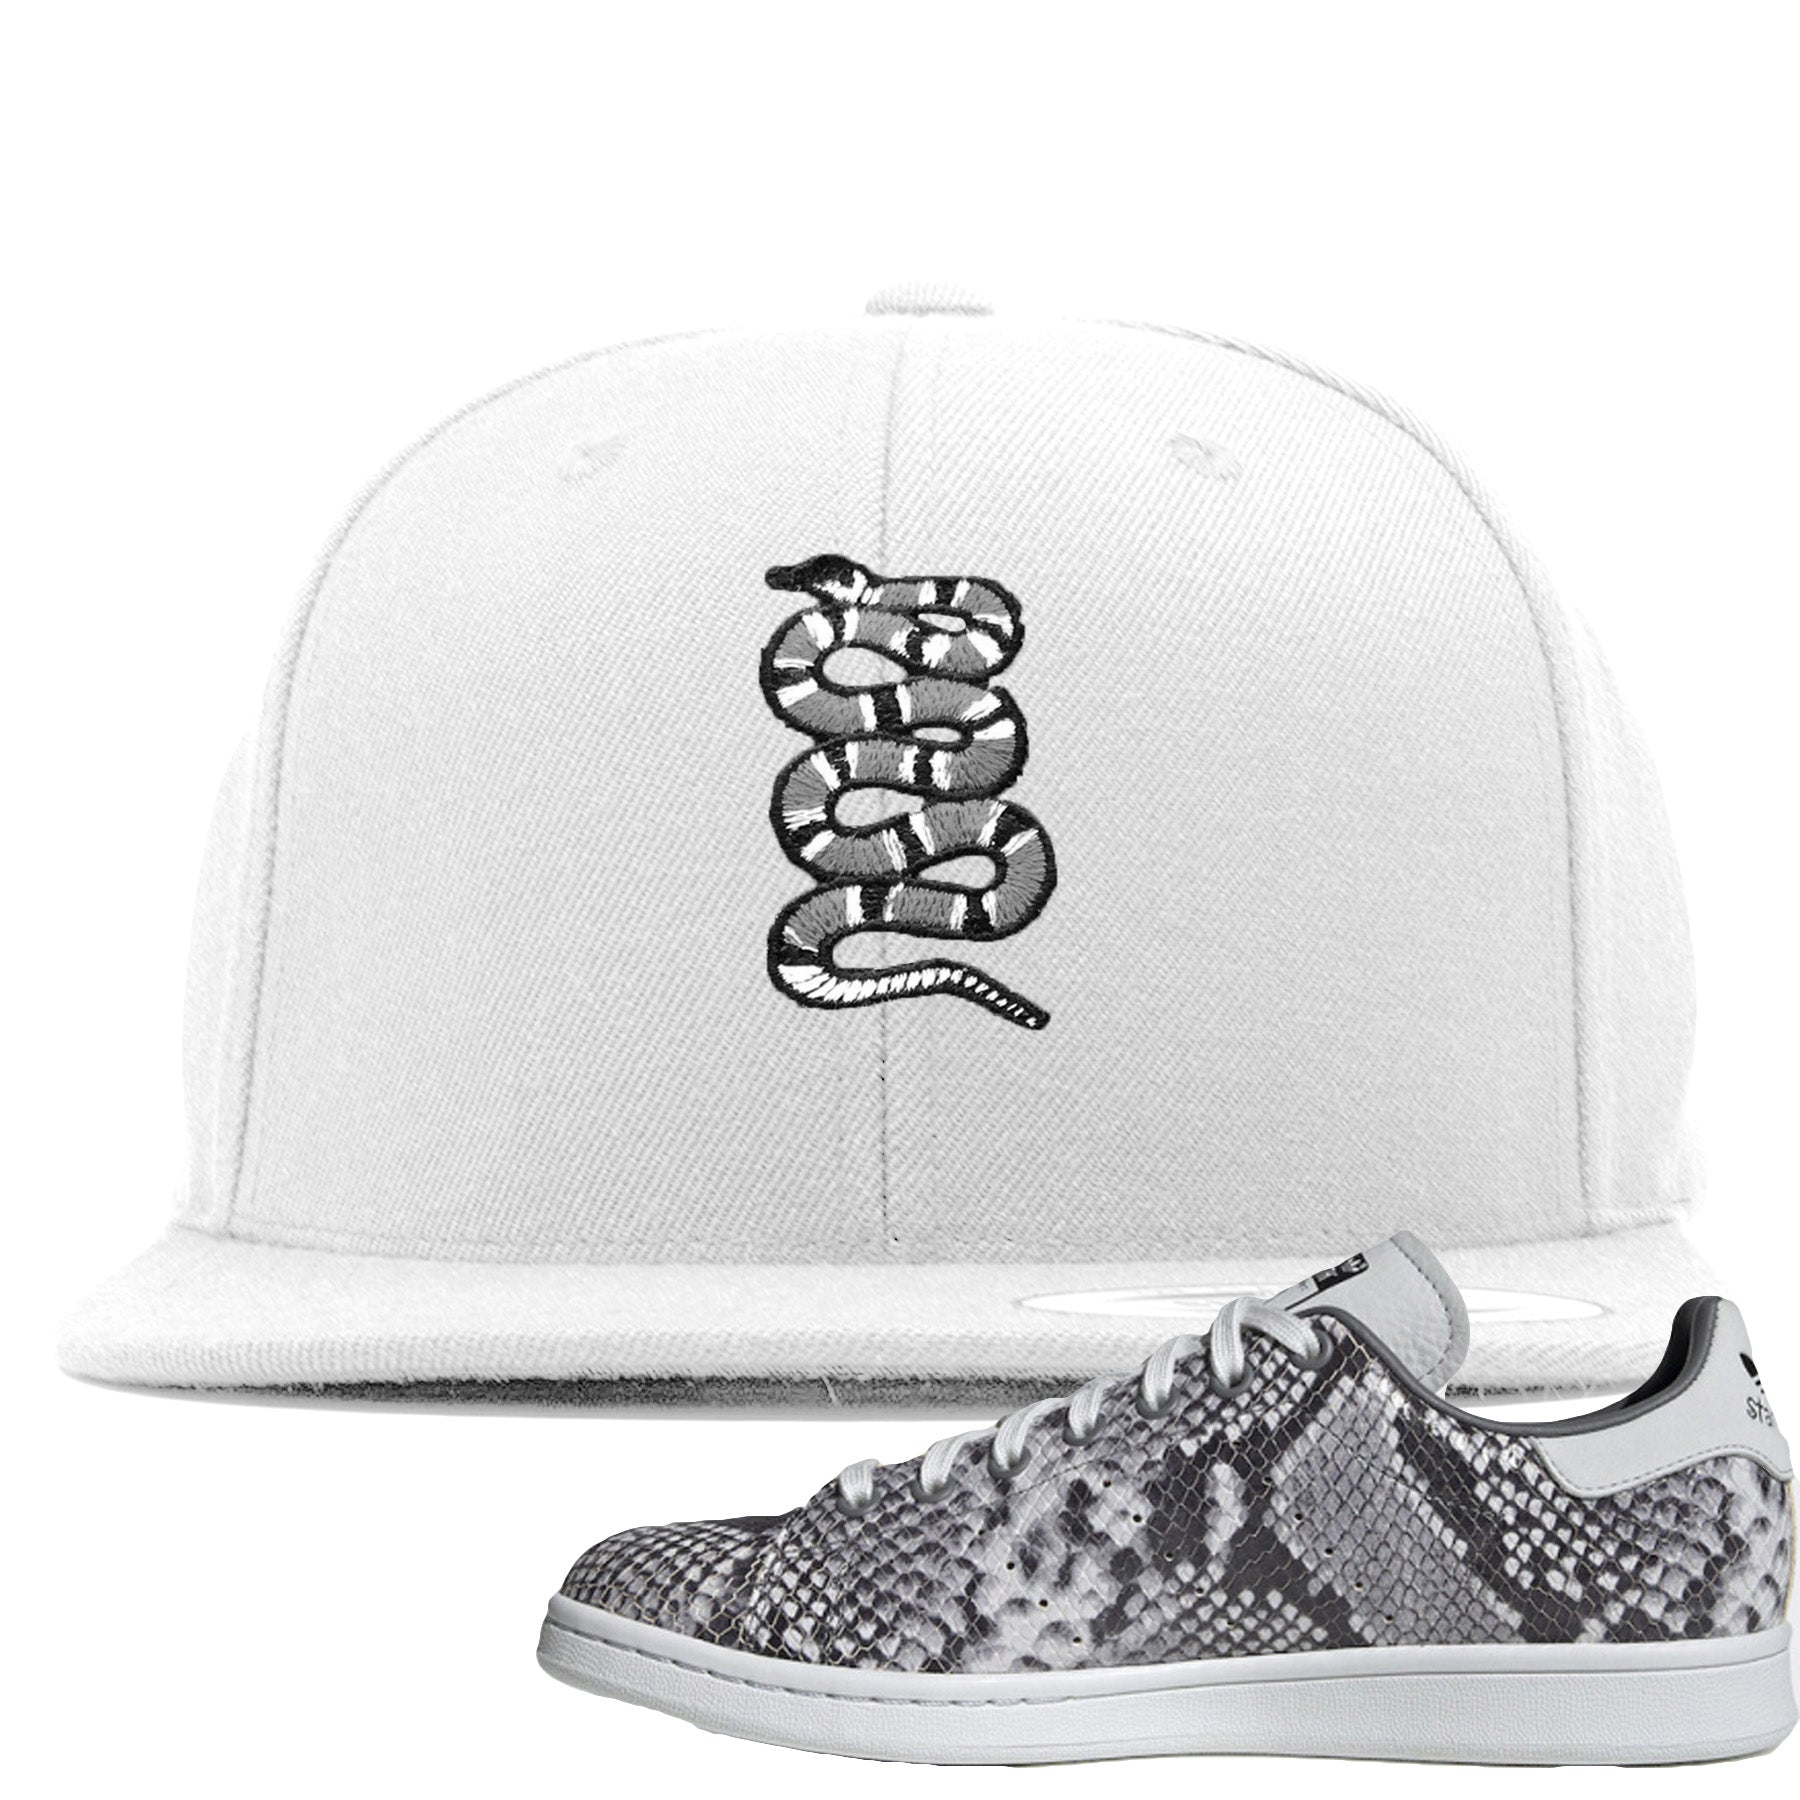 online retailer 54403 47614 Adidas Stan Smith Grey Snakeskin Sneaker Match Coiled Snake White Snapback